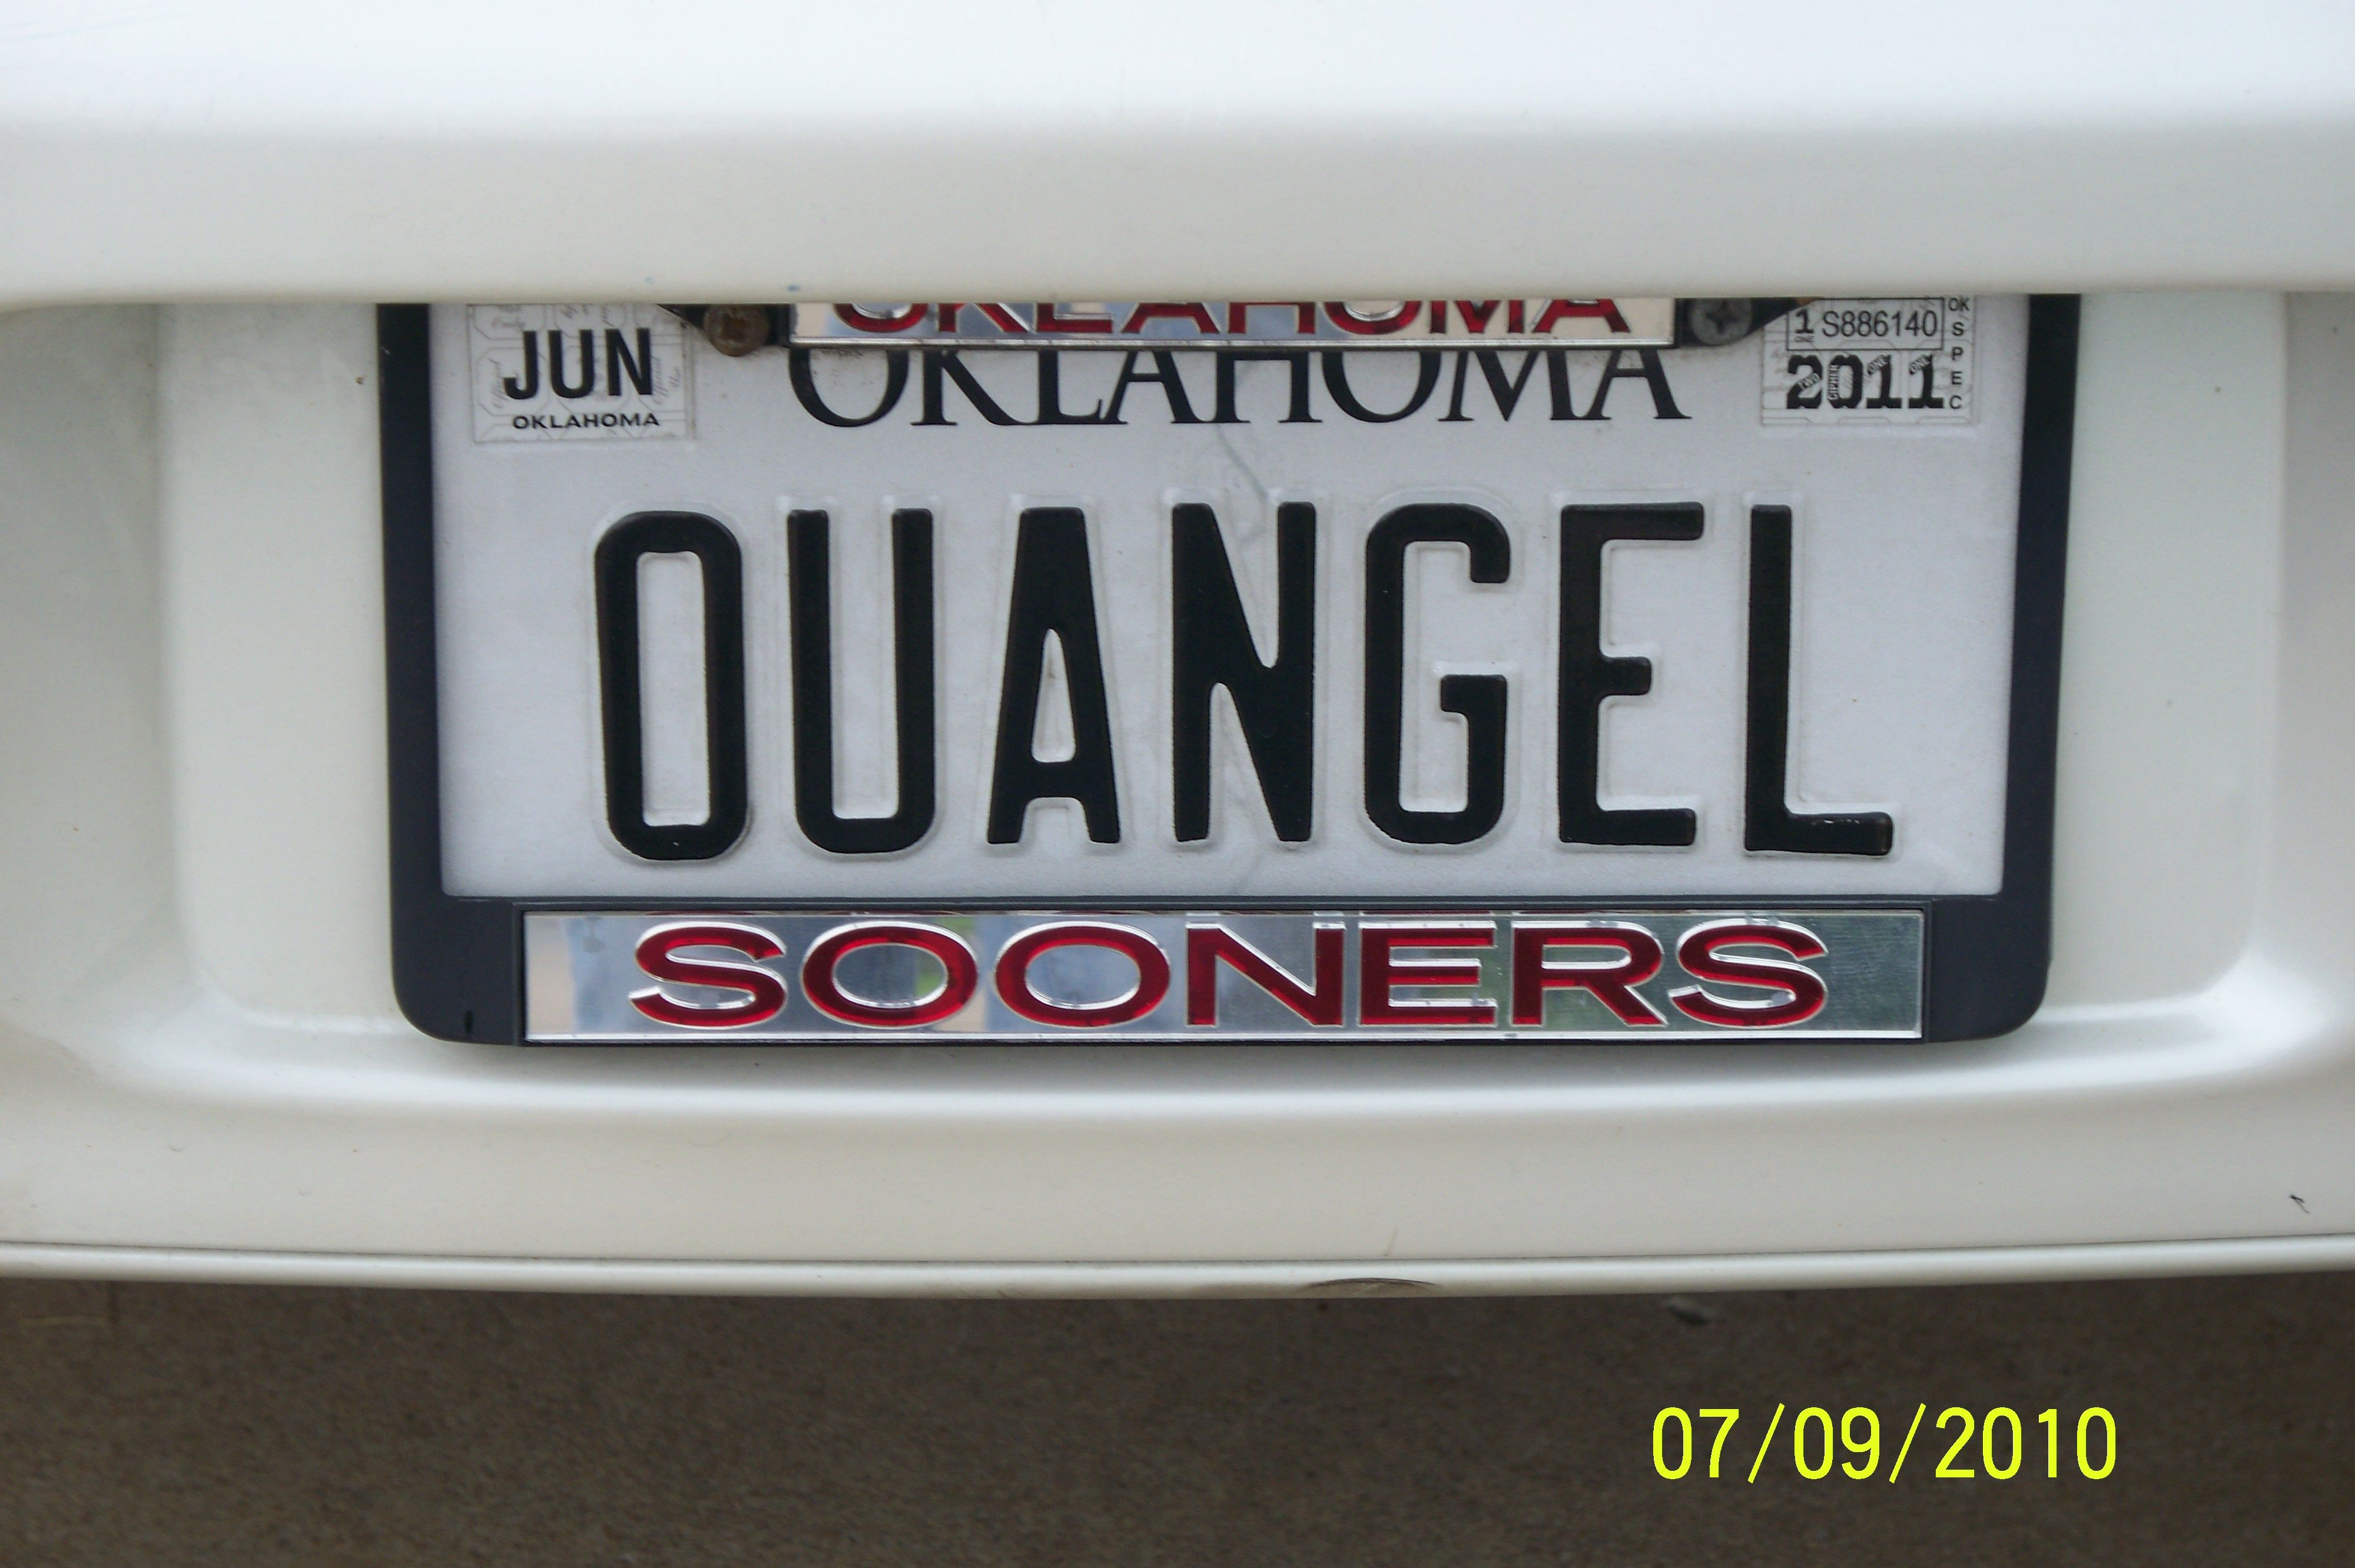 How To Get A Copy Of Oklahoma Vehicle Registration